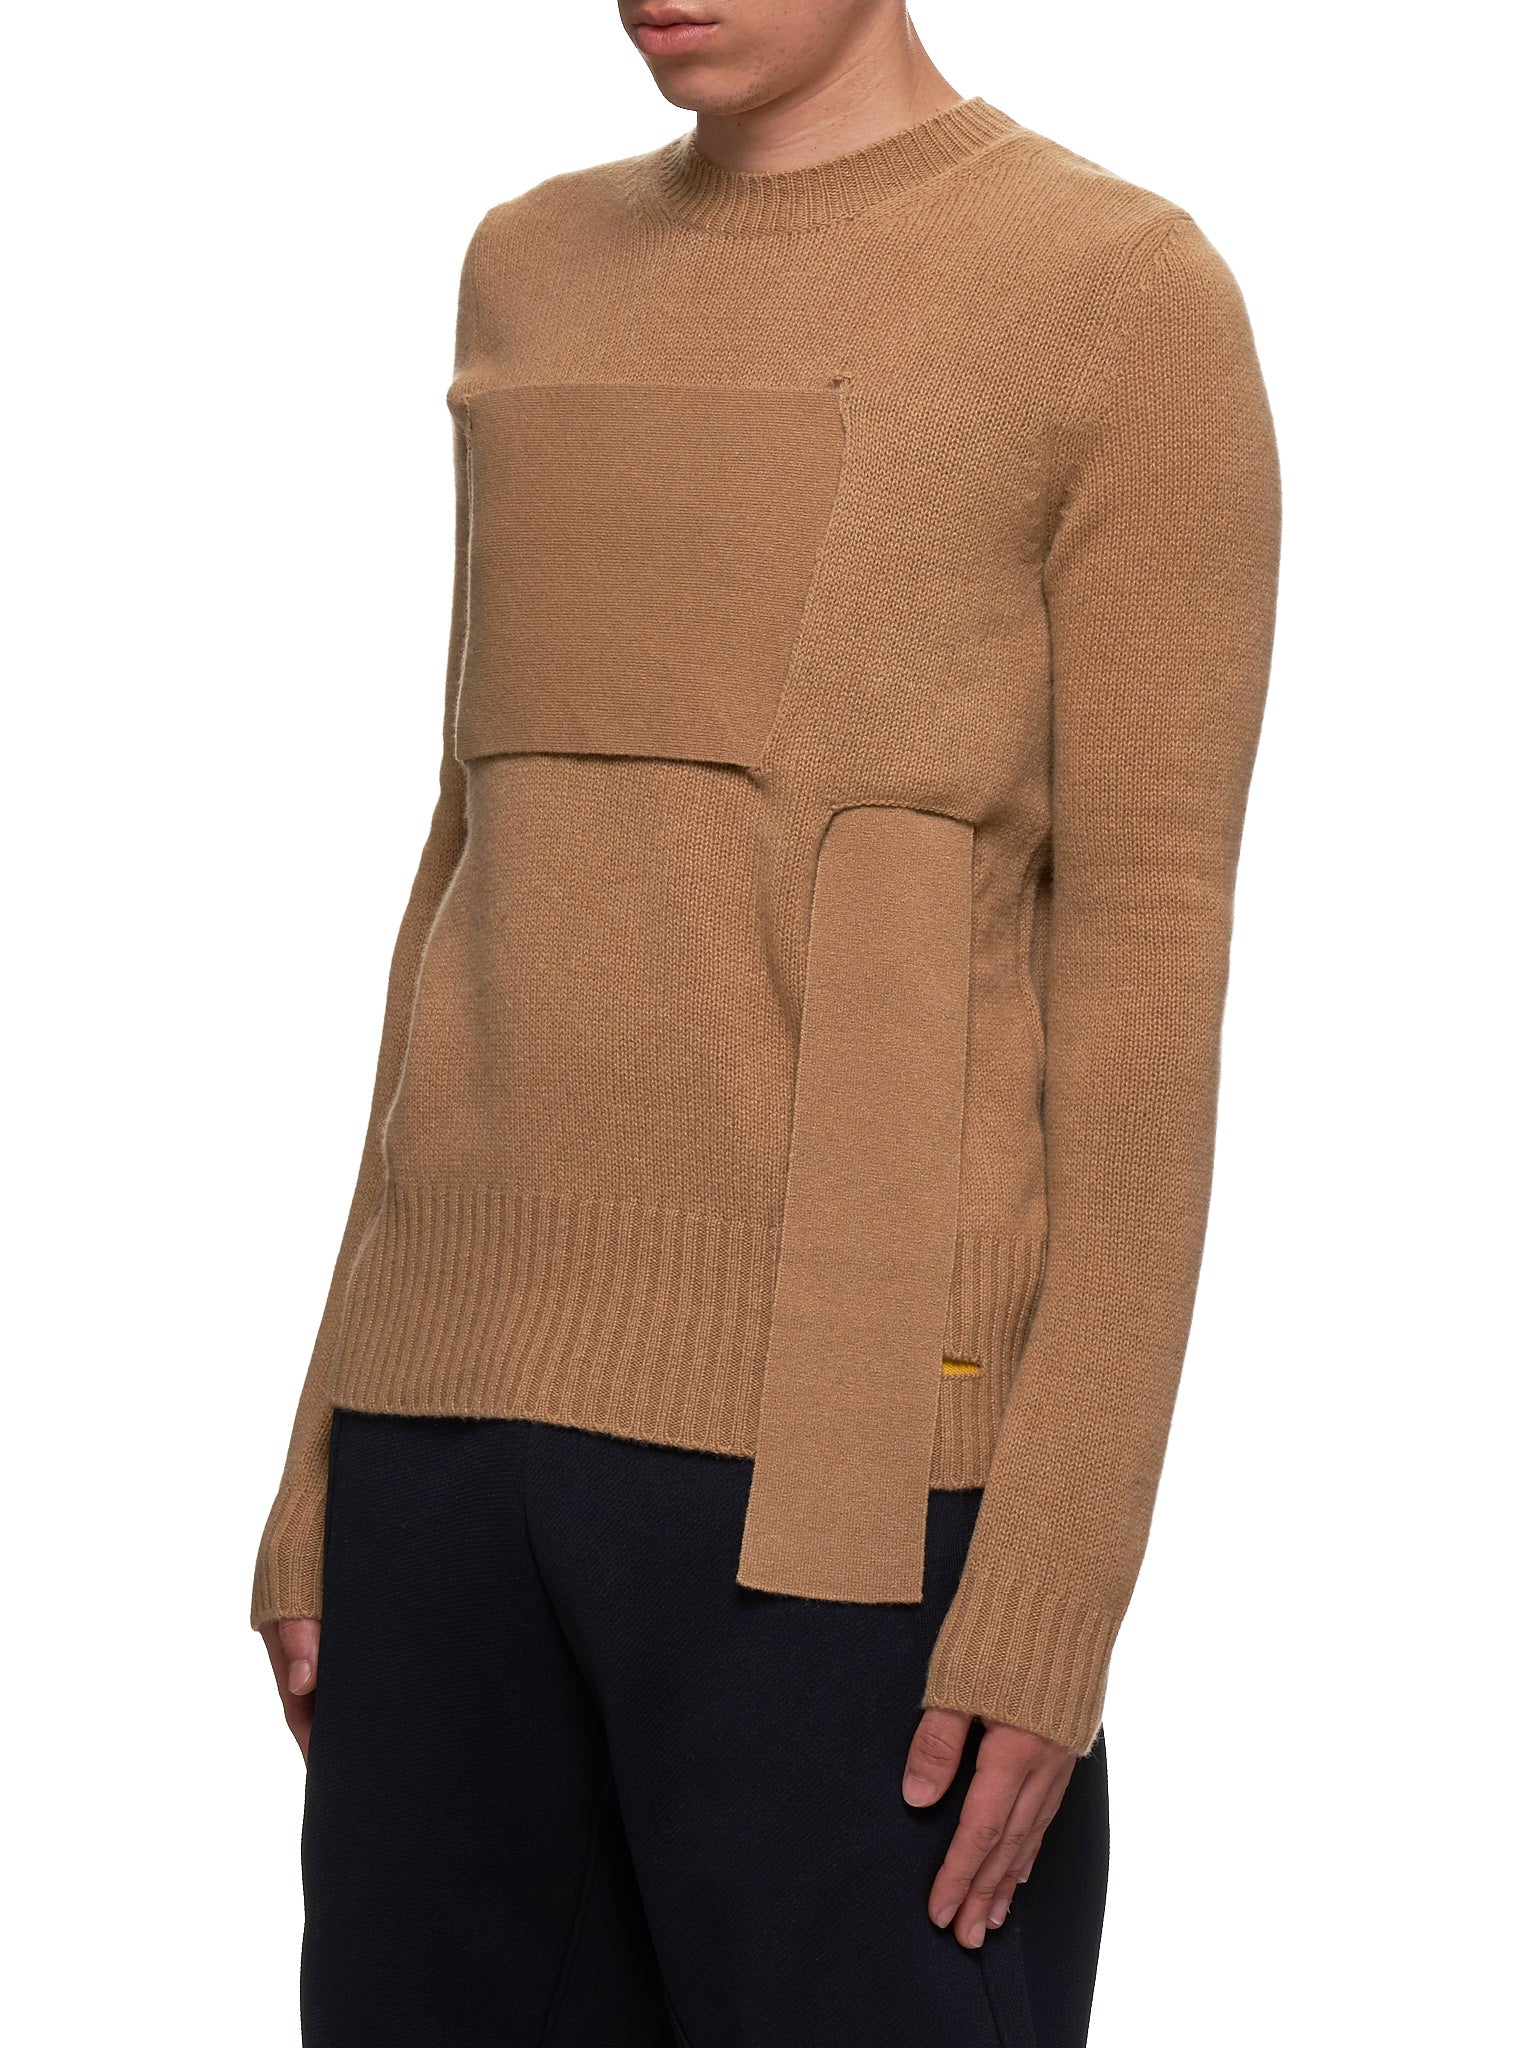 Bottega Veneta Sweater - Hlorenzo Side